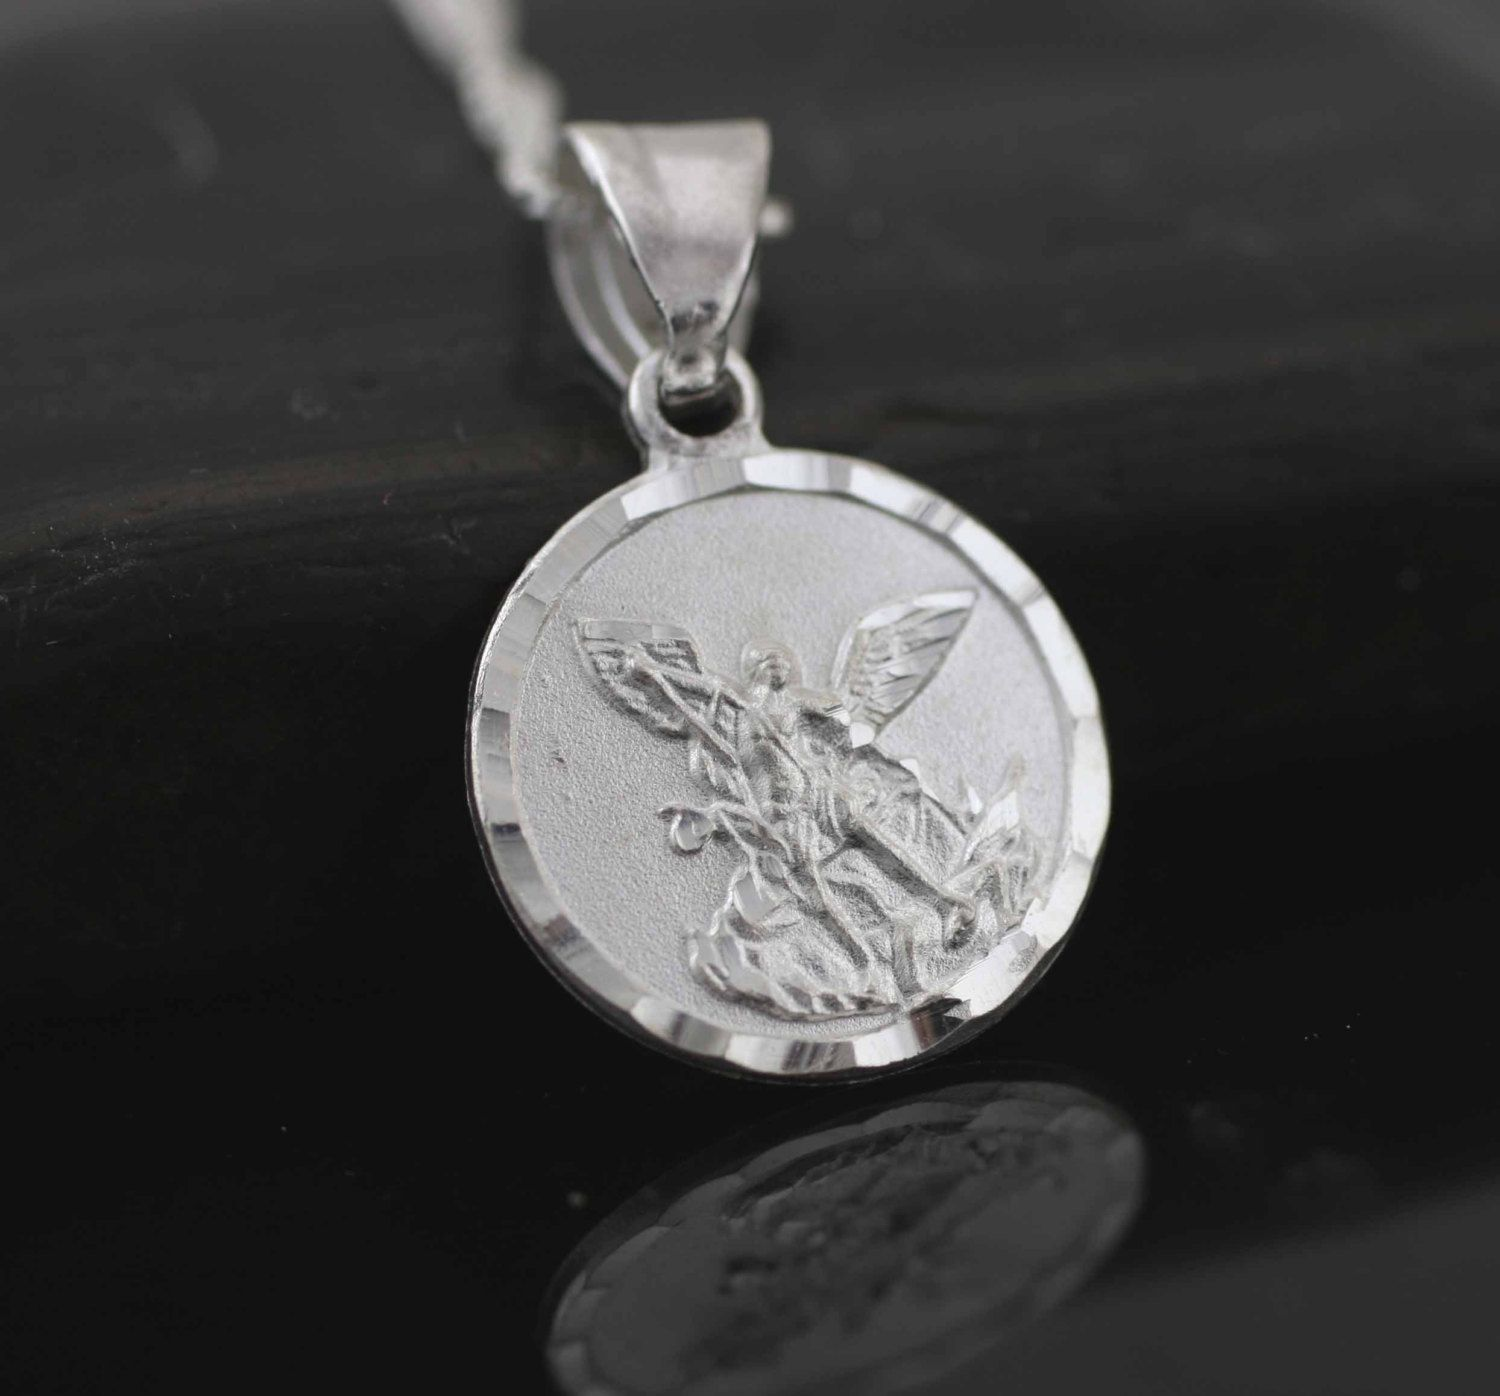 Sterling silver st michael necklace saint michael archangel sterling silver st michael necklace saint michael archangel pendant small st michael medal sterling silver medal st michael prayer aloadofball Image collections